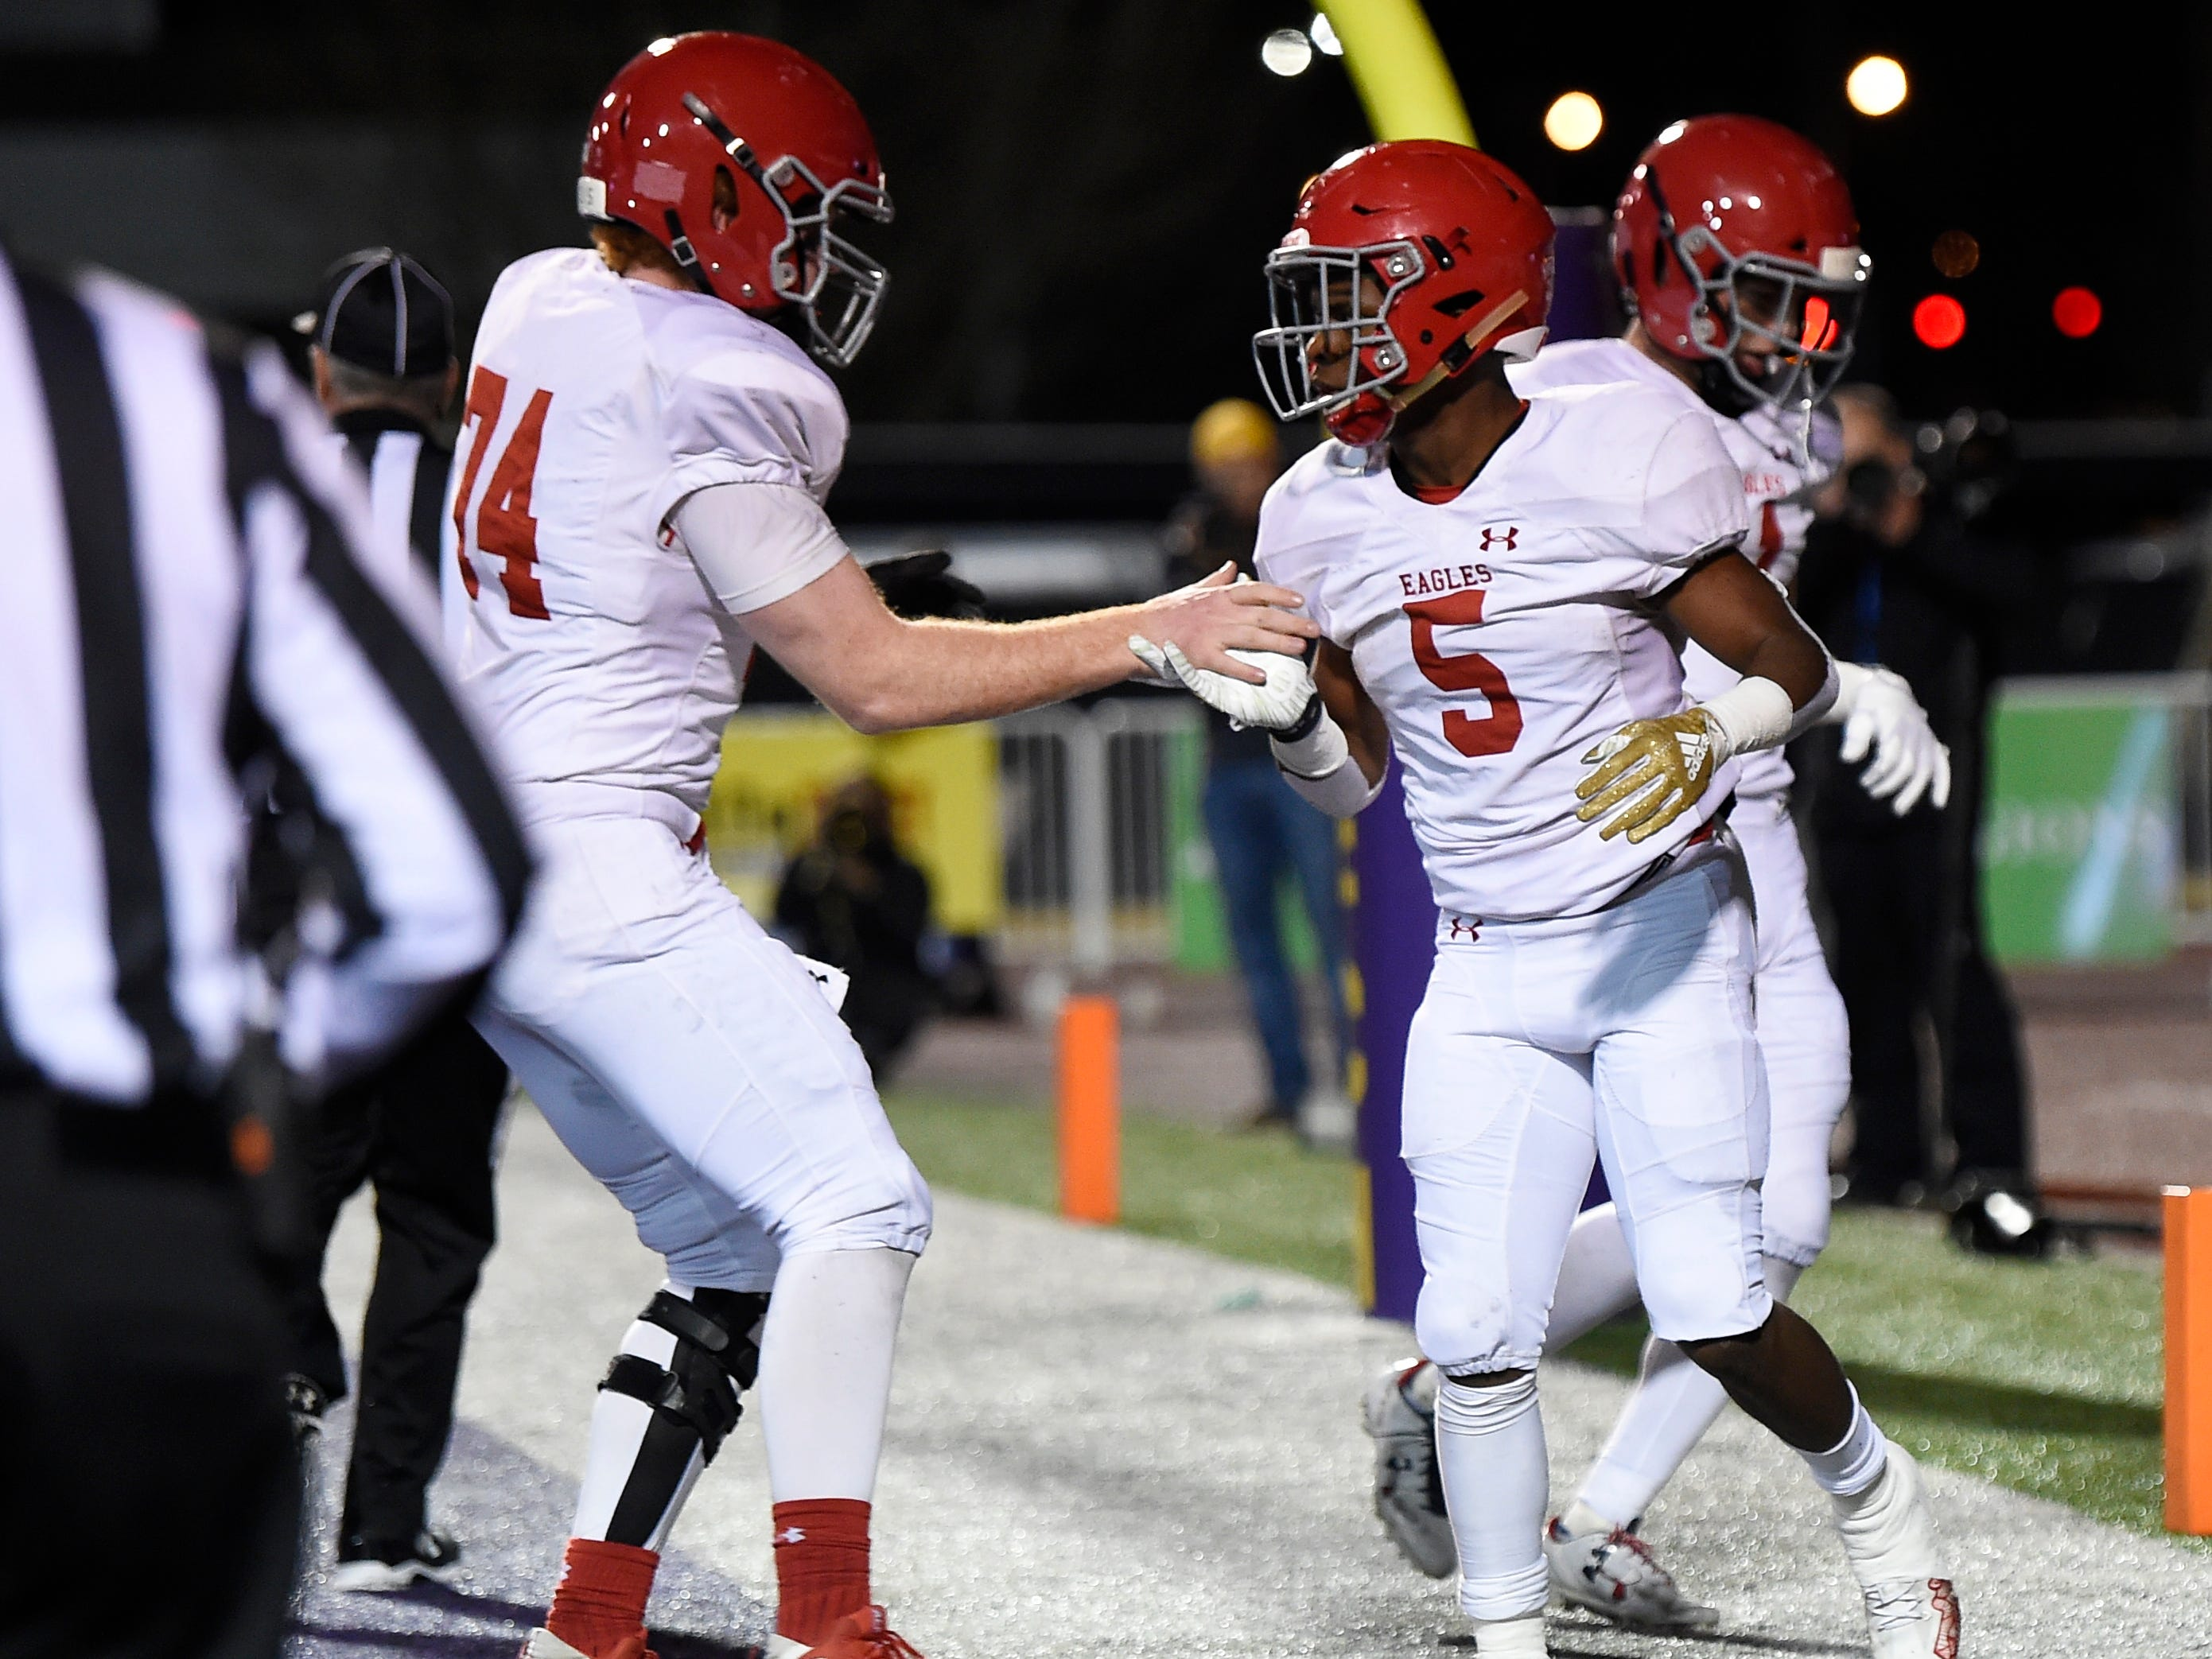 Brentwood Academy running back Tomario Pleasant (5) is congratulated by offensive lineman Will Collins (74) after scoring a touchdown in the first quarter at the Division II-AAA BlueCross Bowl state championship at Tennessee Tech's Tucker Stadium in Cookeville, Tenn., on Friday, Nov. 30, 2018.